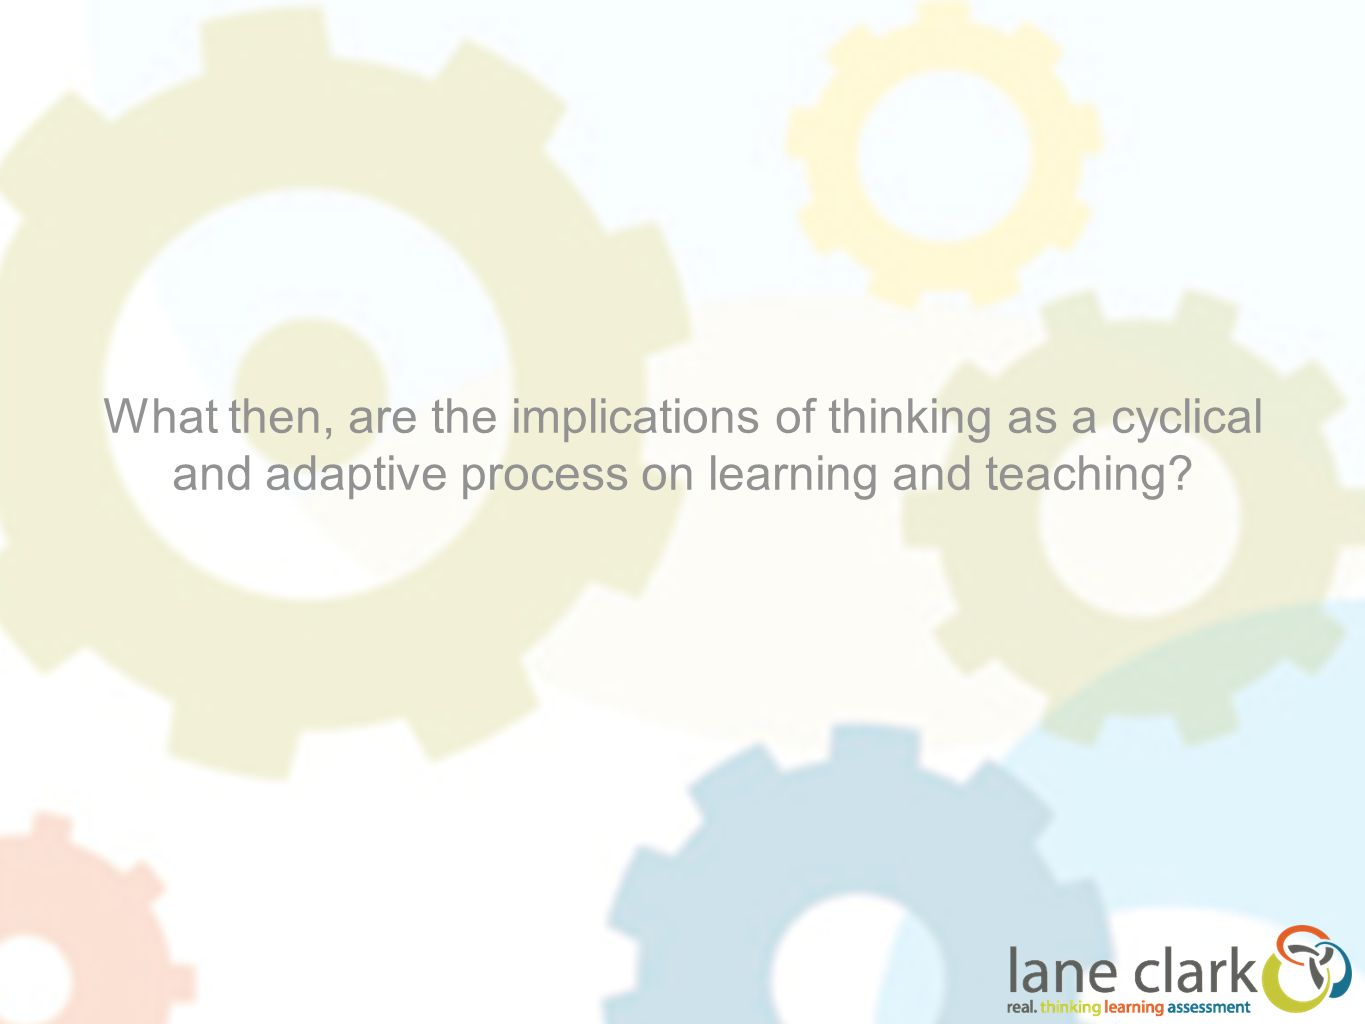 What then, are the implications of thinking as a cyclical and adaptive process on learning and teaching?